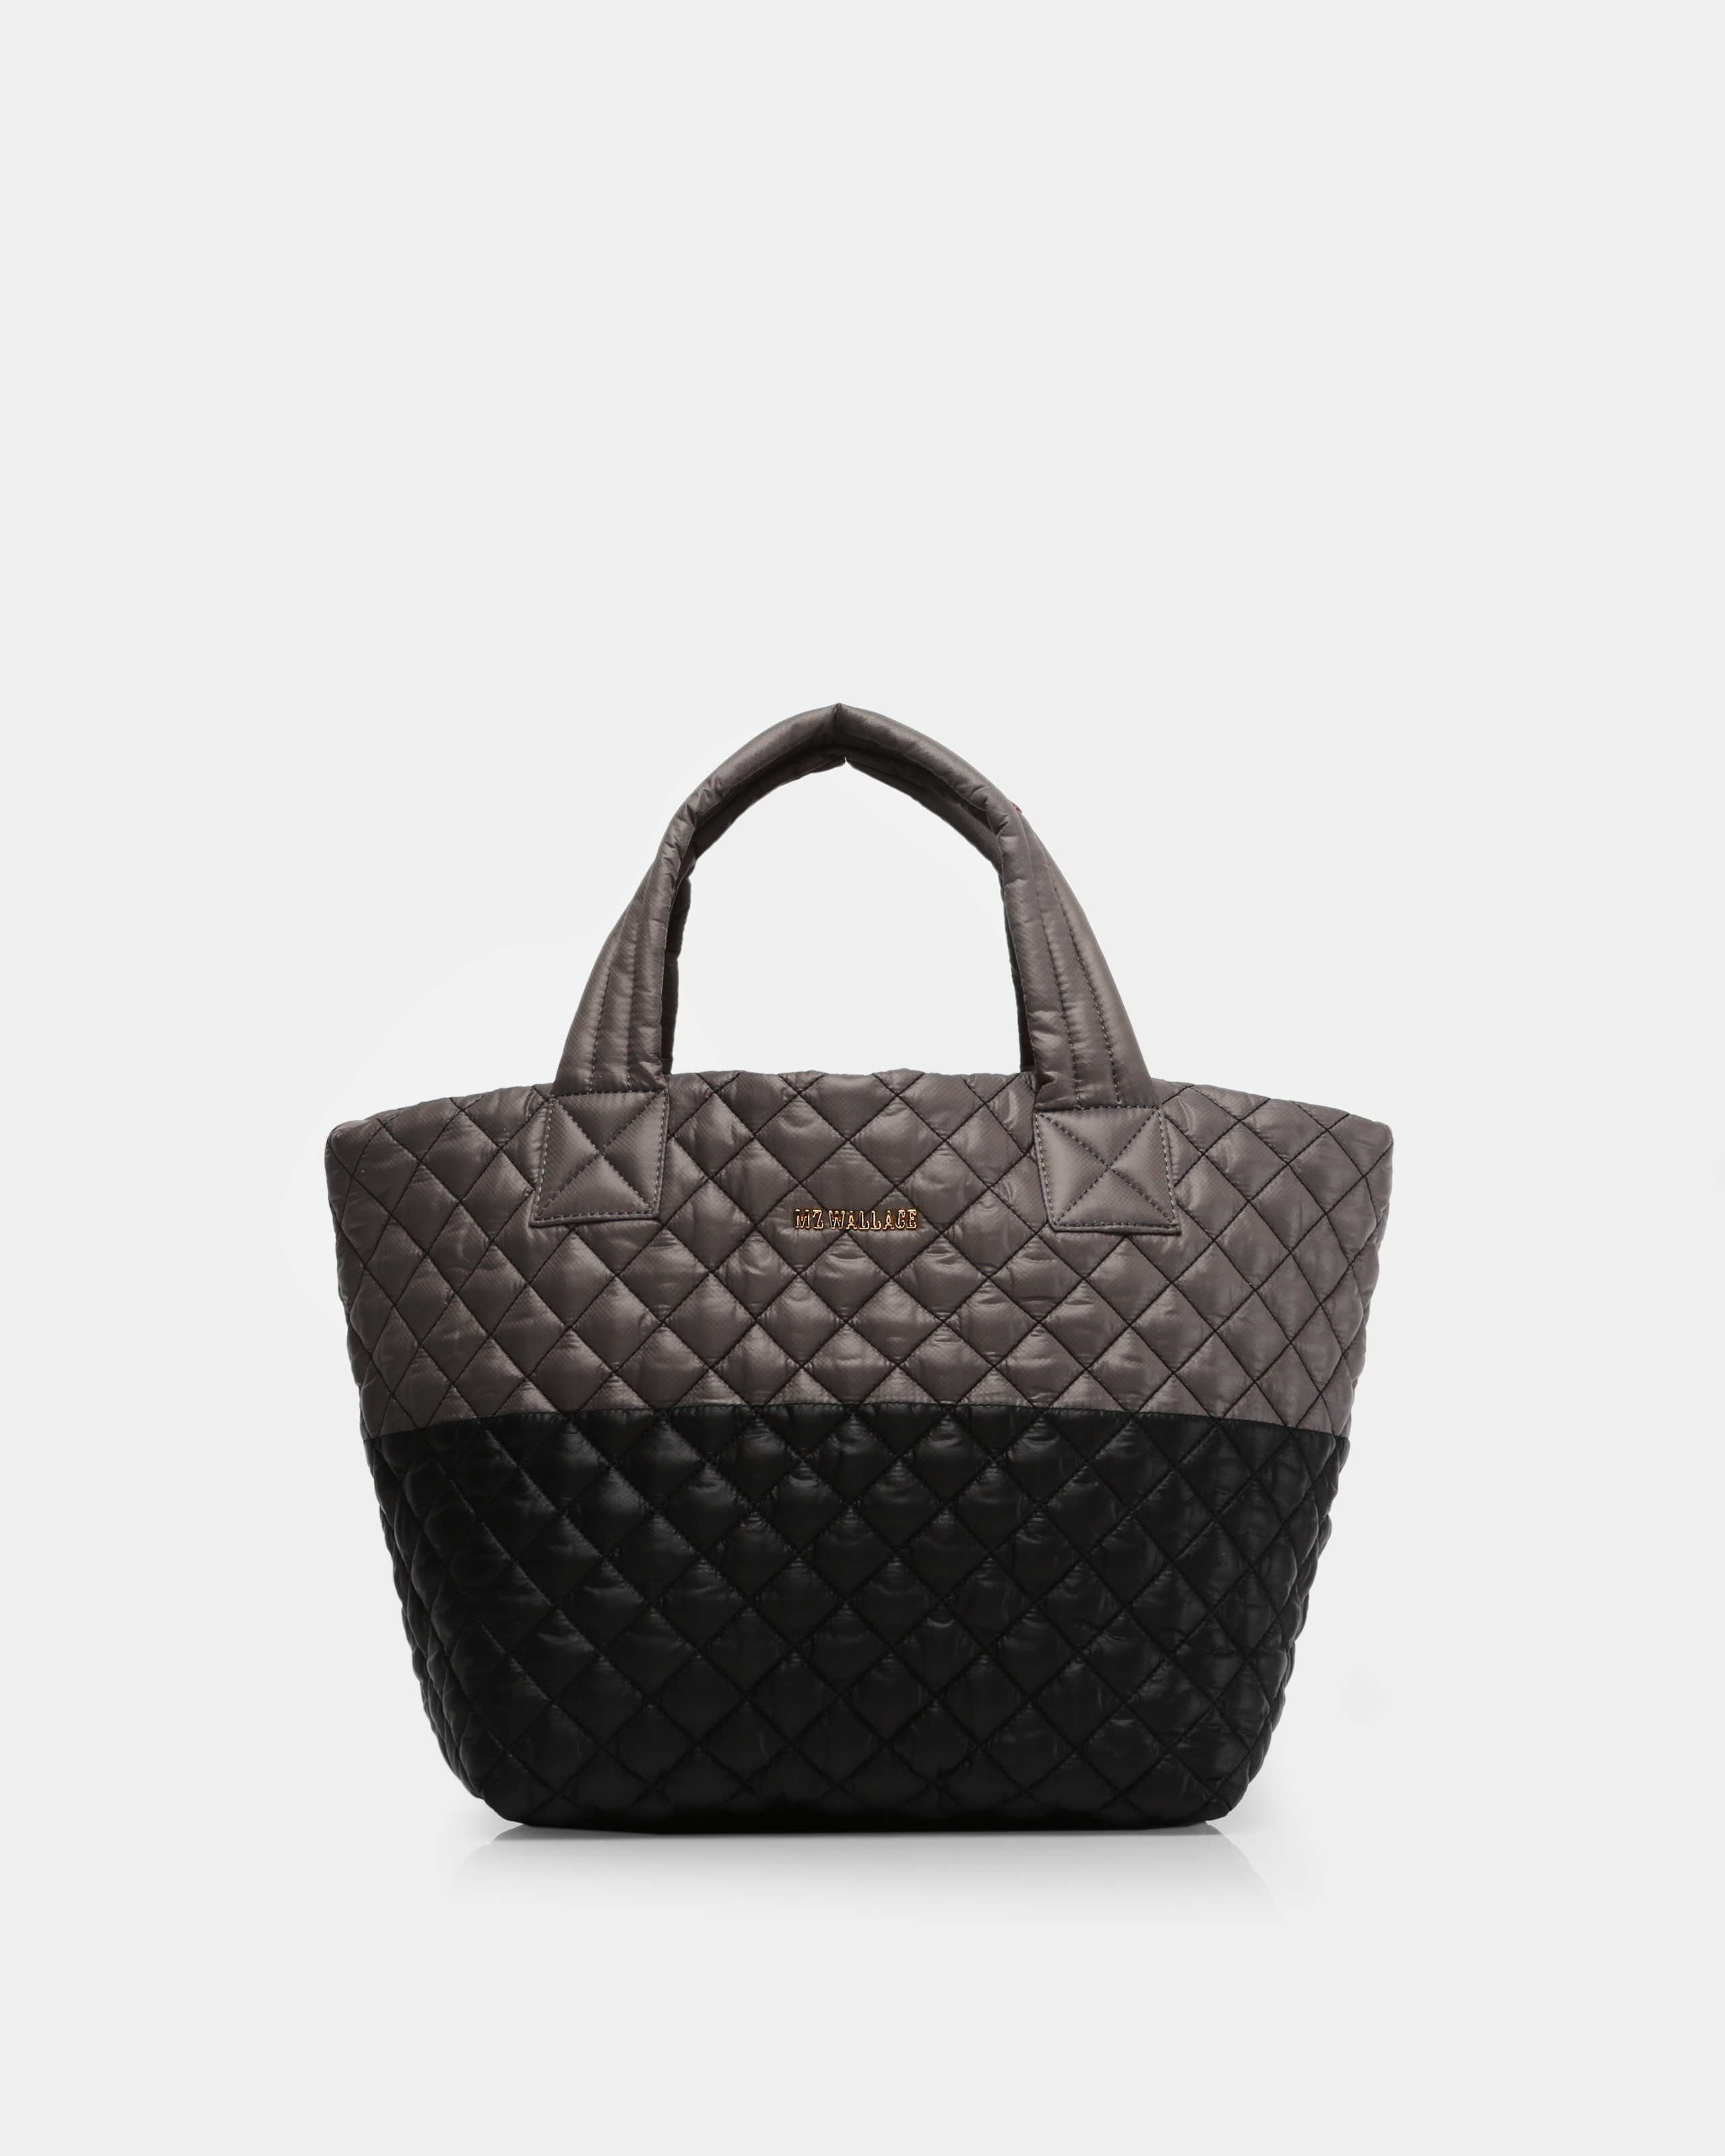 Black/Magnet Oxford Small Metro Tote (3701329) in color Black & Magnet